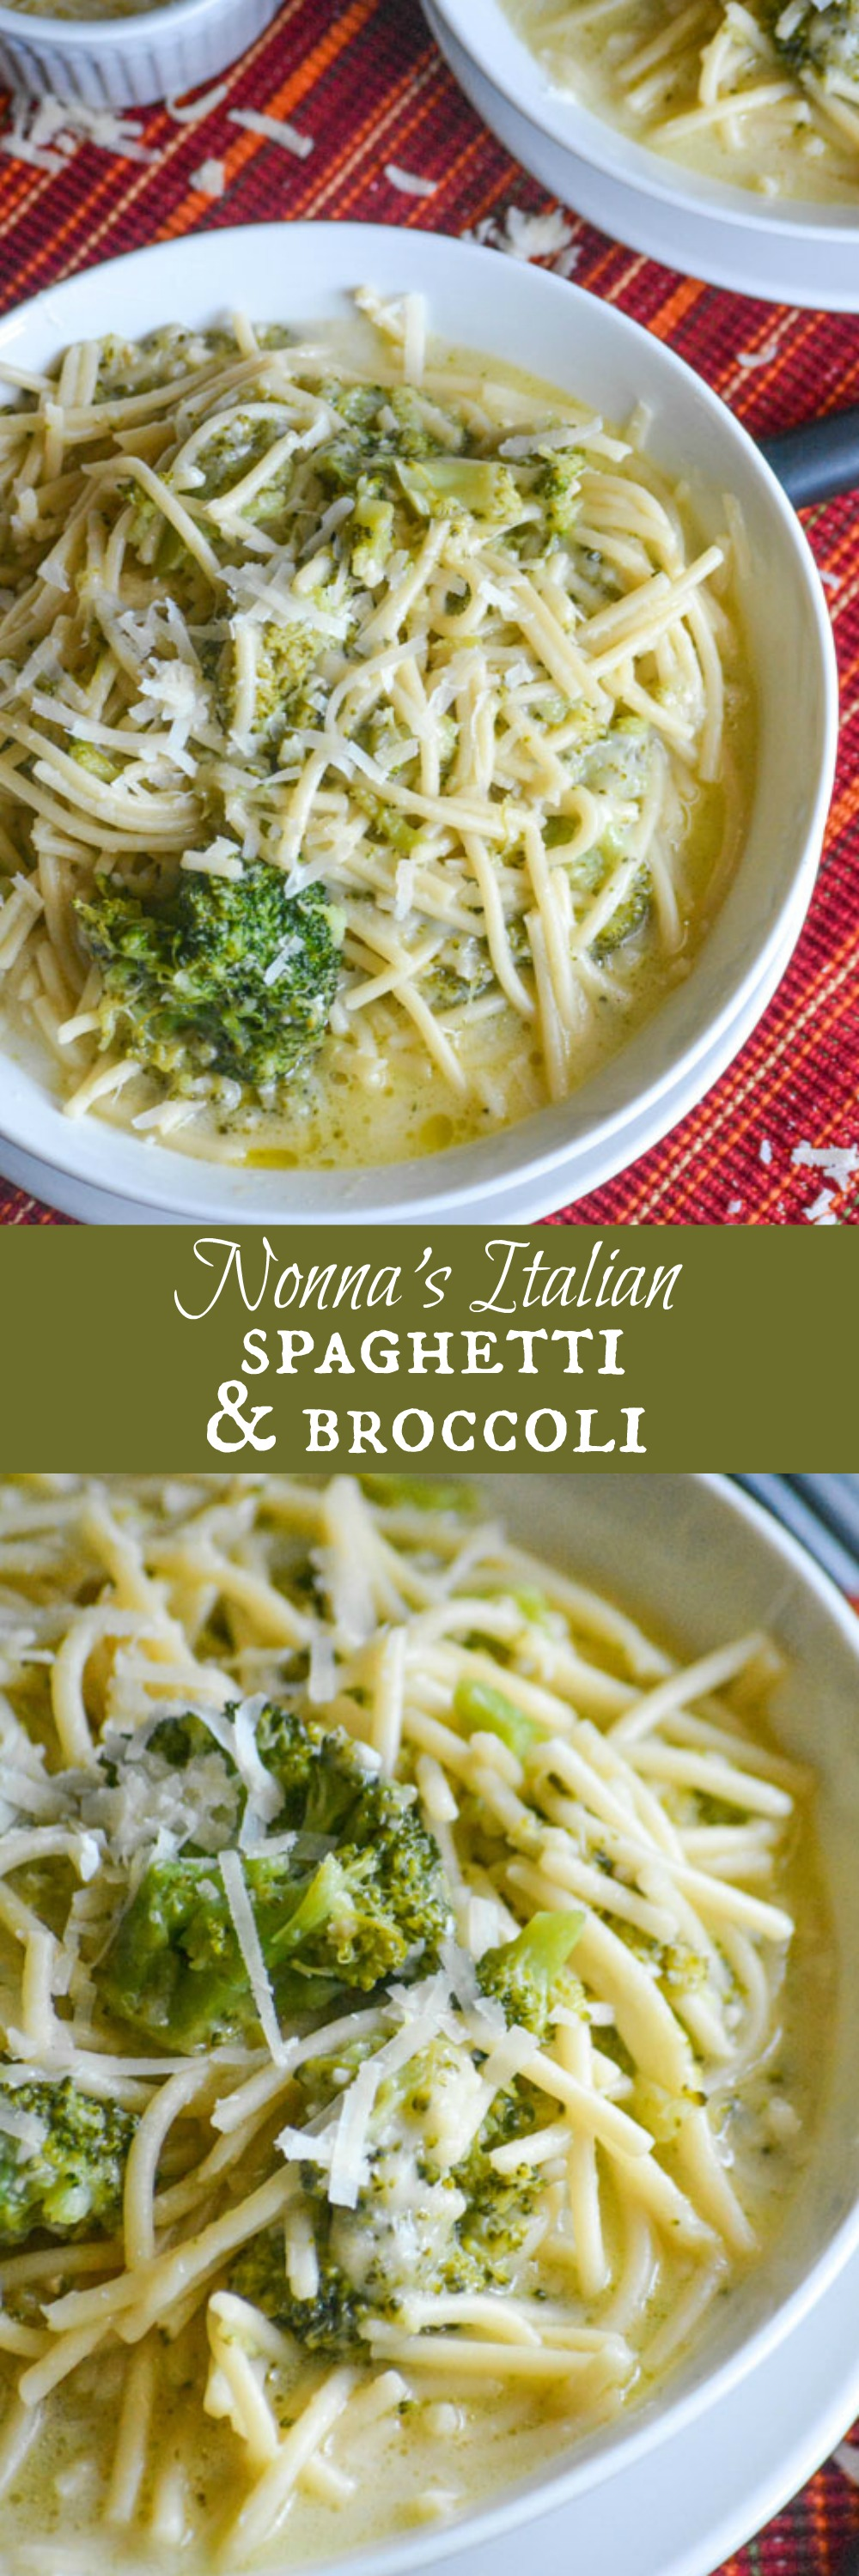 Nothing was better growing up than cheesy Italian American comfort food straight from Nonna's kitchen. Keep those memories alive with a big batch of Nonna's Italian Spaghetti & Broccoli- a quick & easy, one dish, vegetarian pasta dinner.